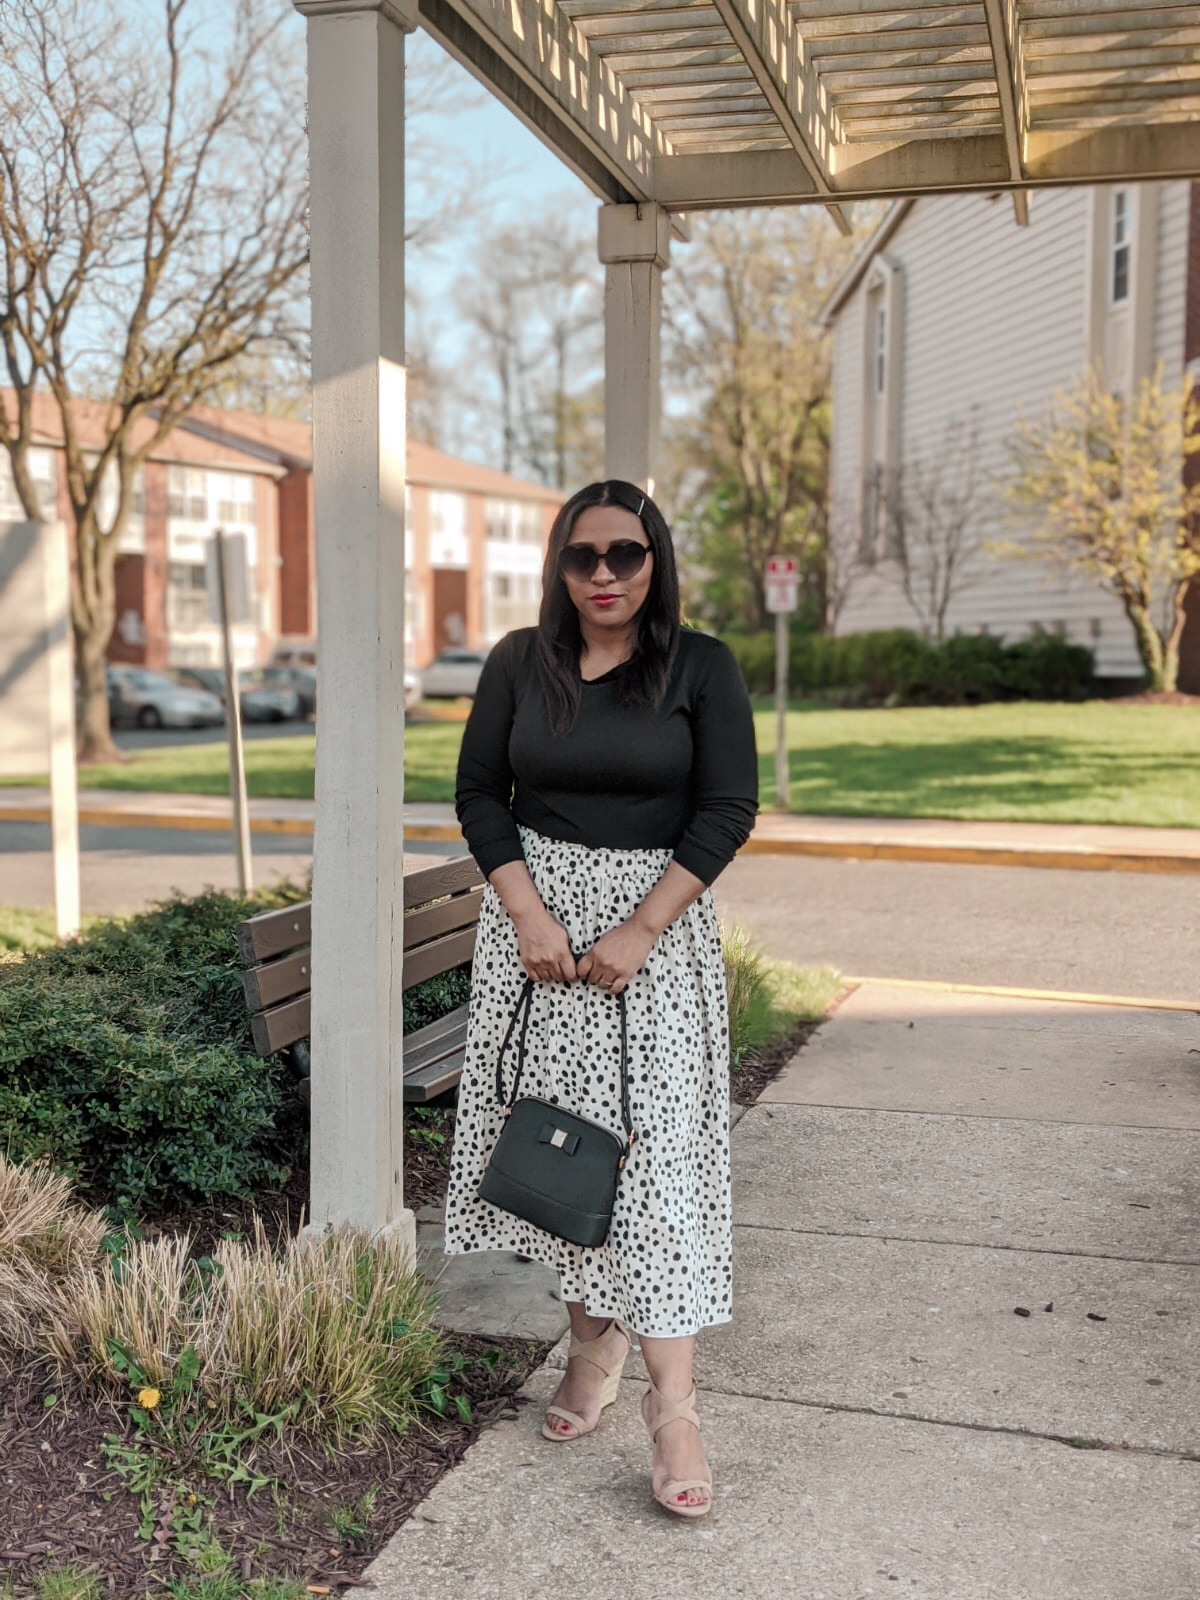 shein, shein reviews, dalmation print, printed skirt, pattys kloset, spring outfit ideas, midi skirt.